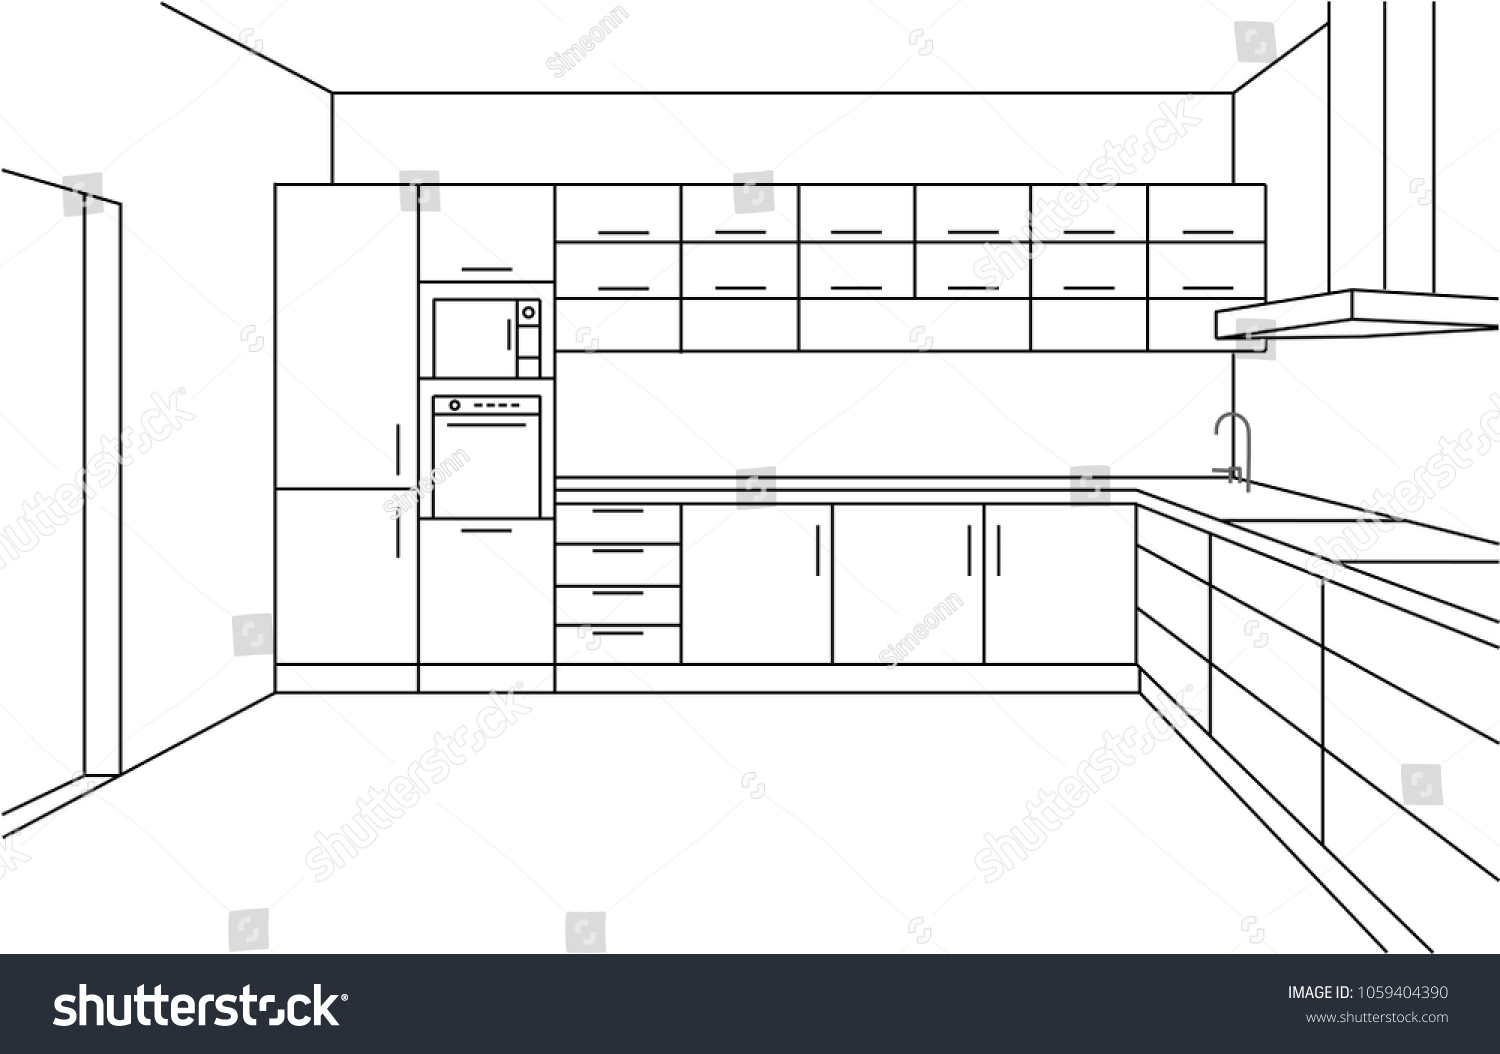 Kitchen corner sketch modern plan interior front view perspective line drawing kitchen project interior